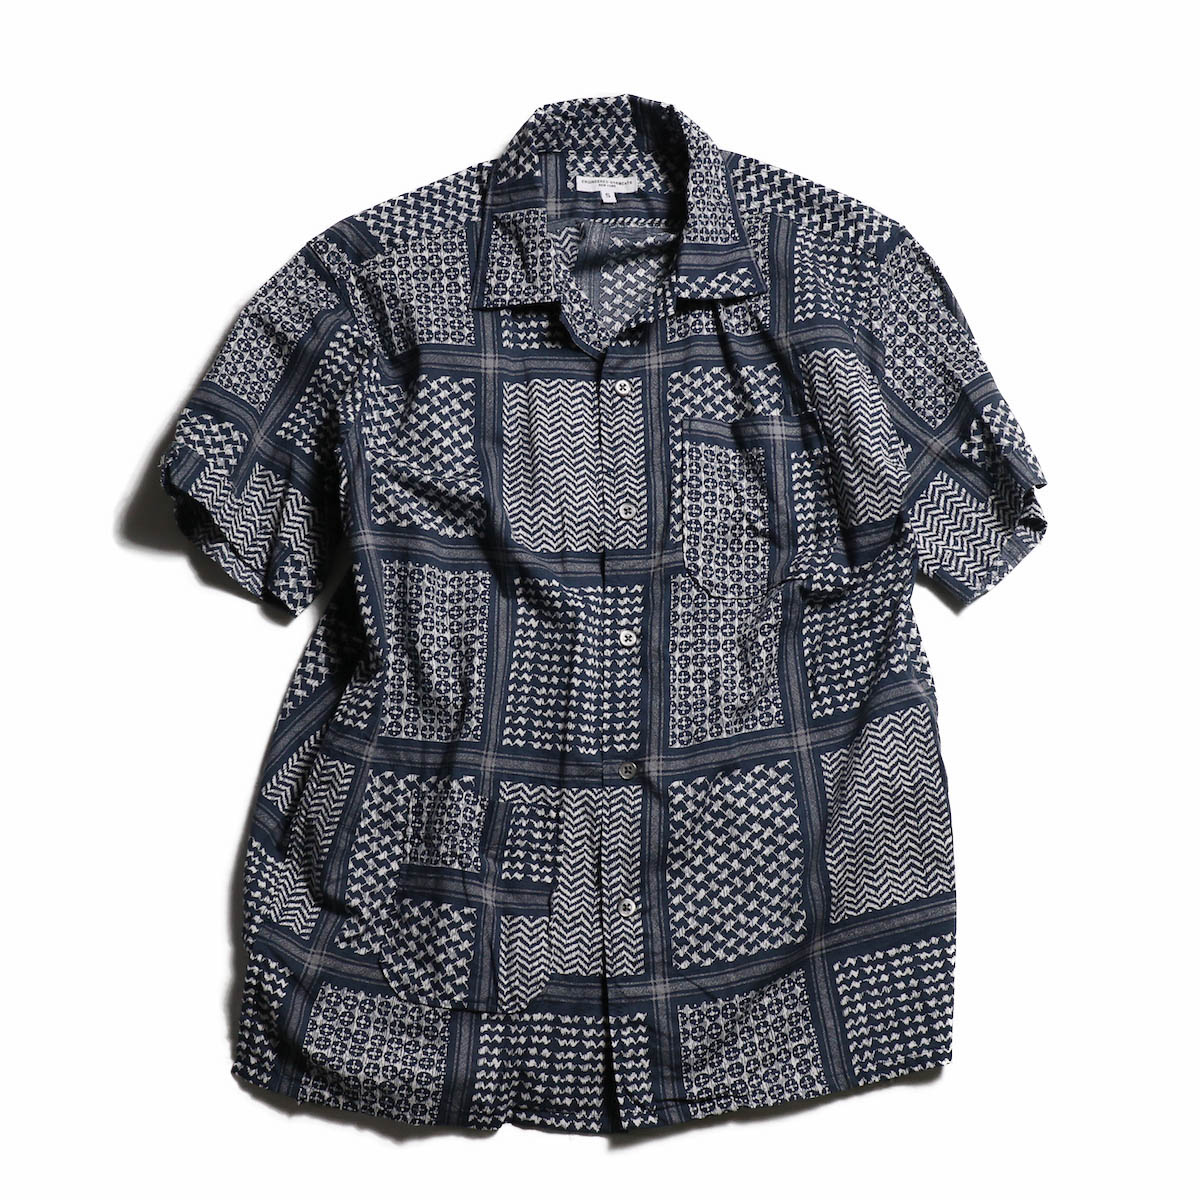 ENGINEERED GARMENTS / Camp Shirt - Afghan Print -Navy/White